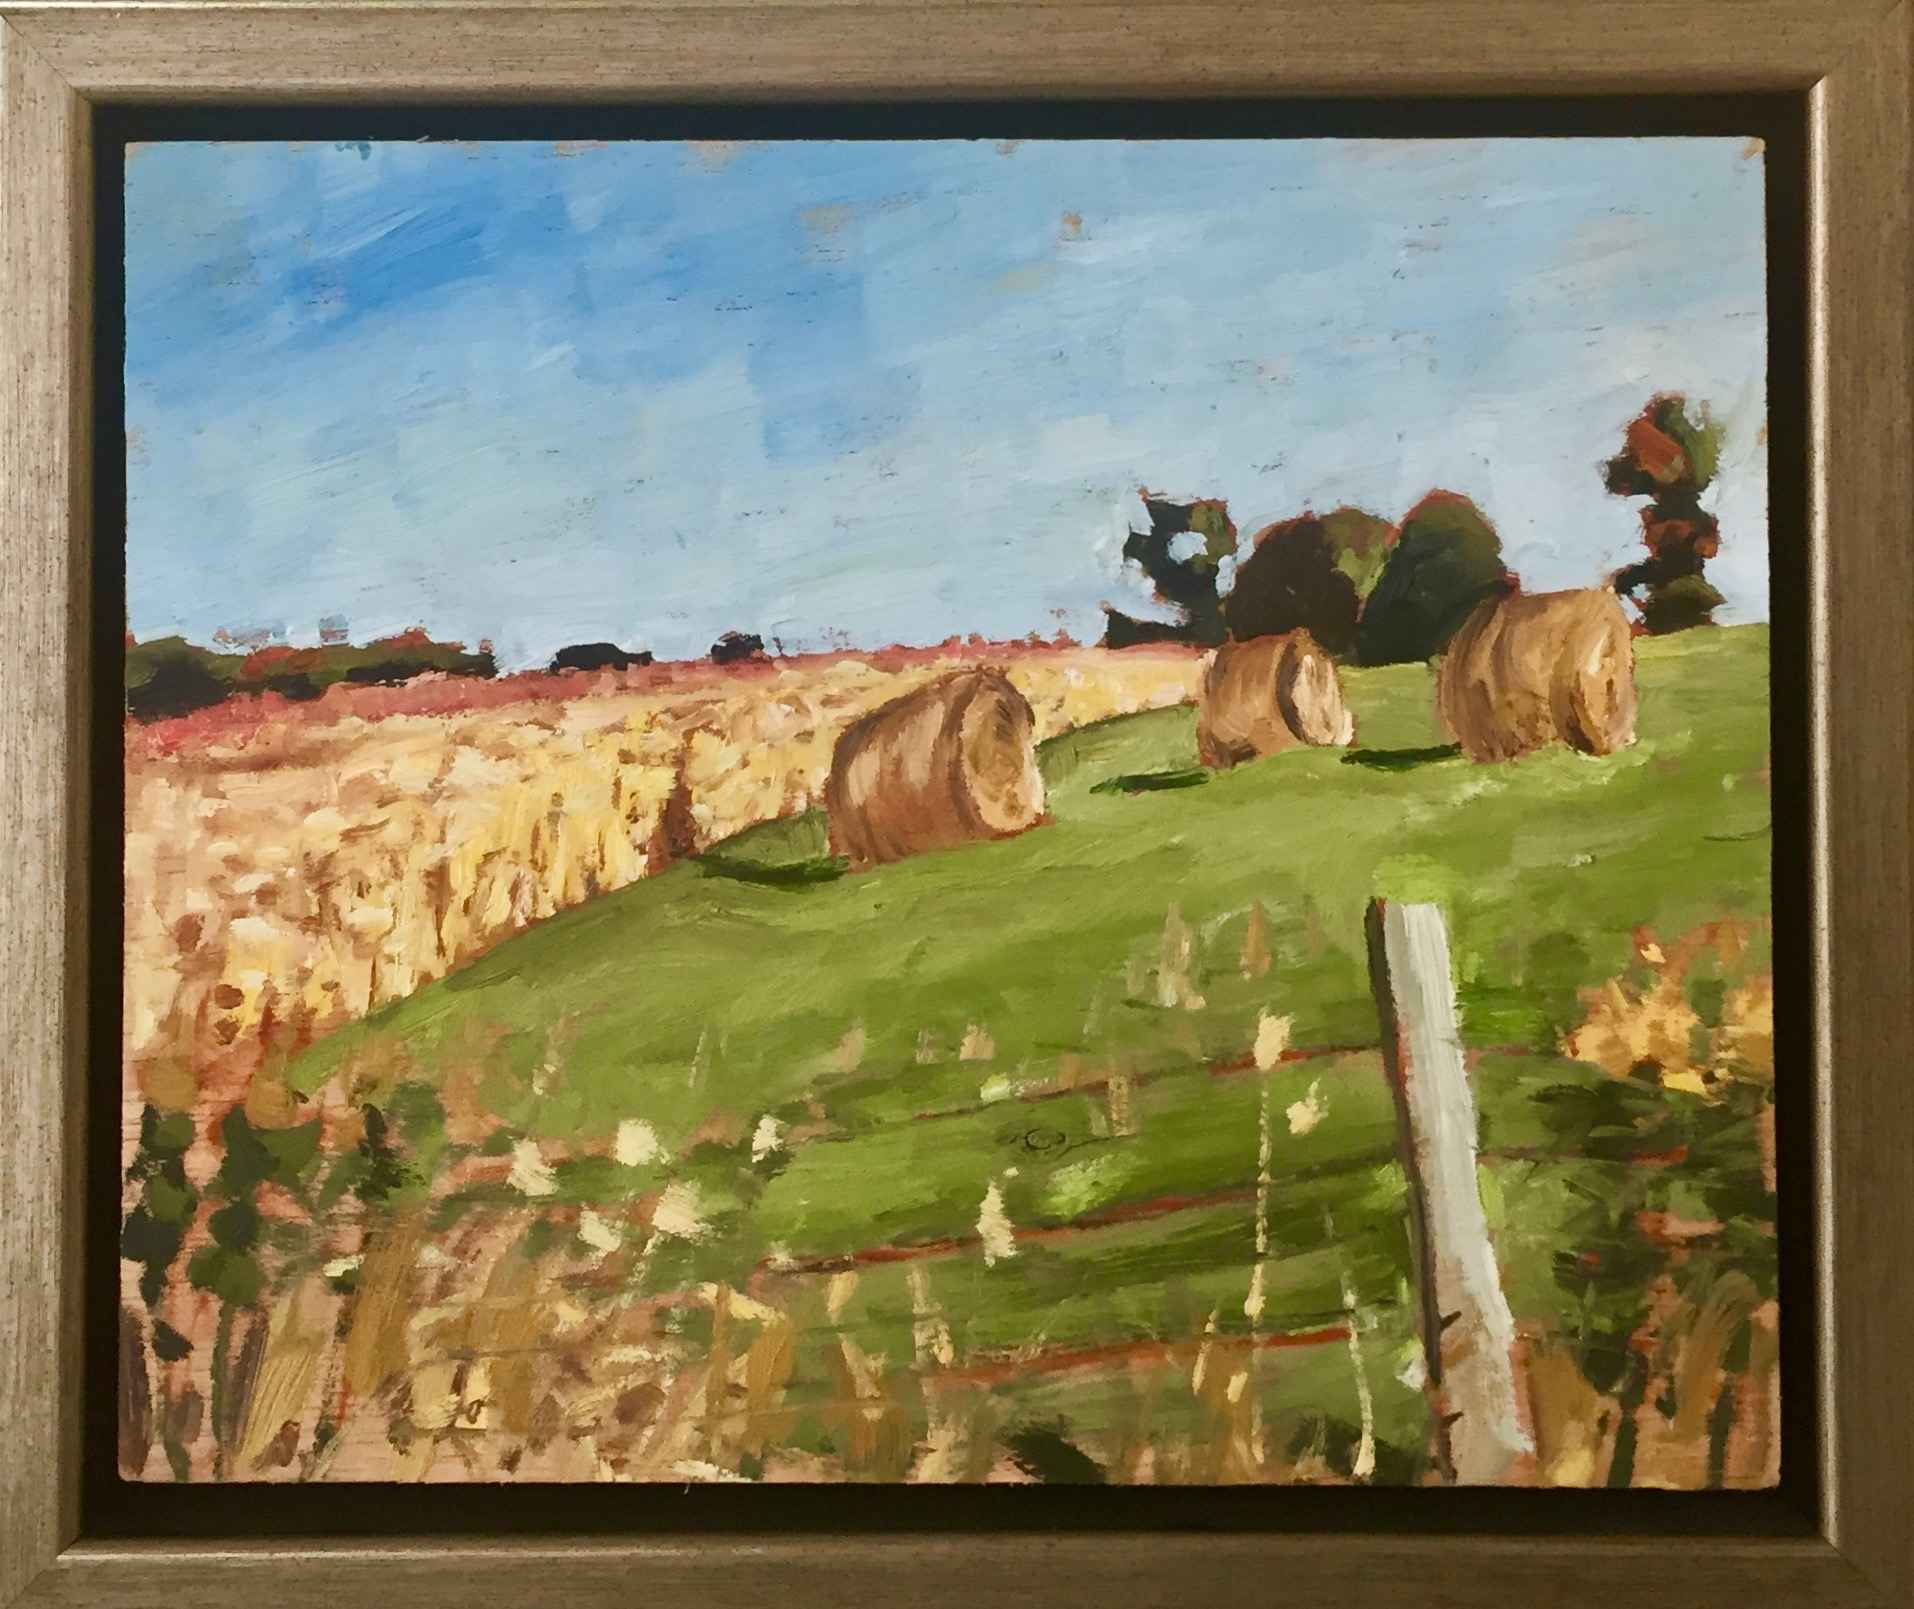 North Of Orono by  John Climenhage - Masterpiece Online